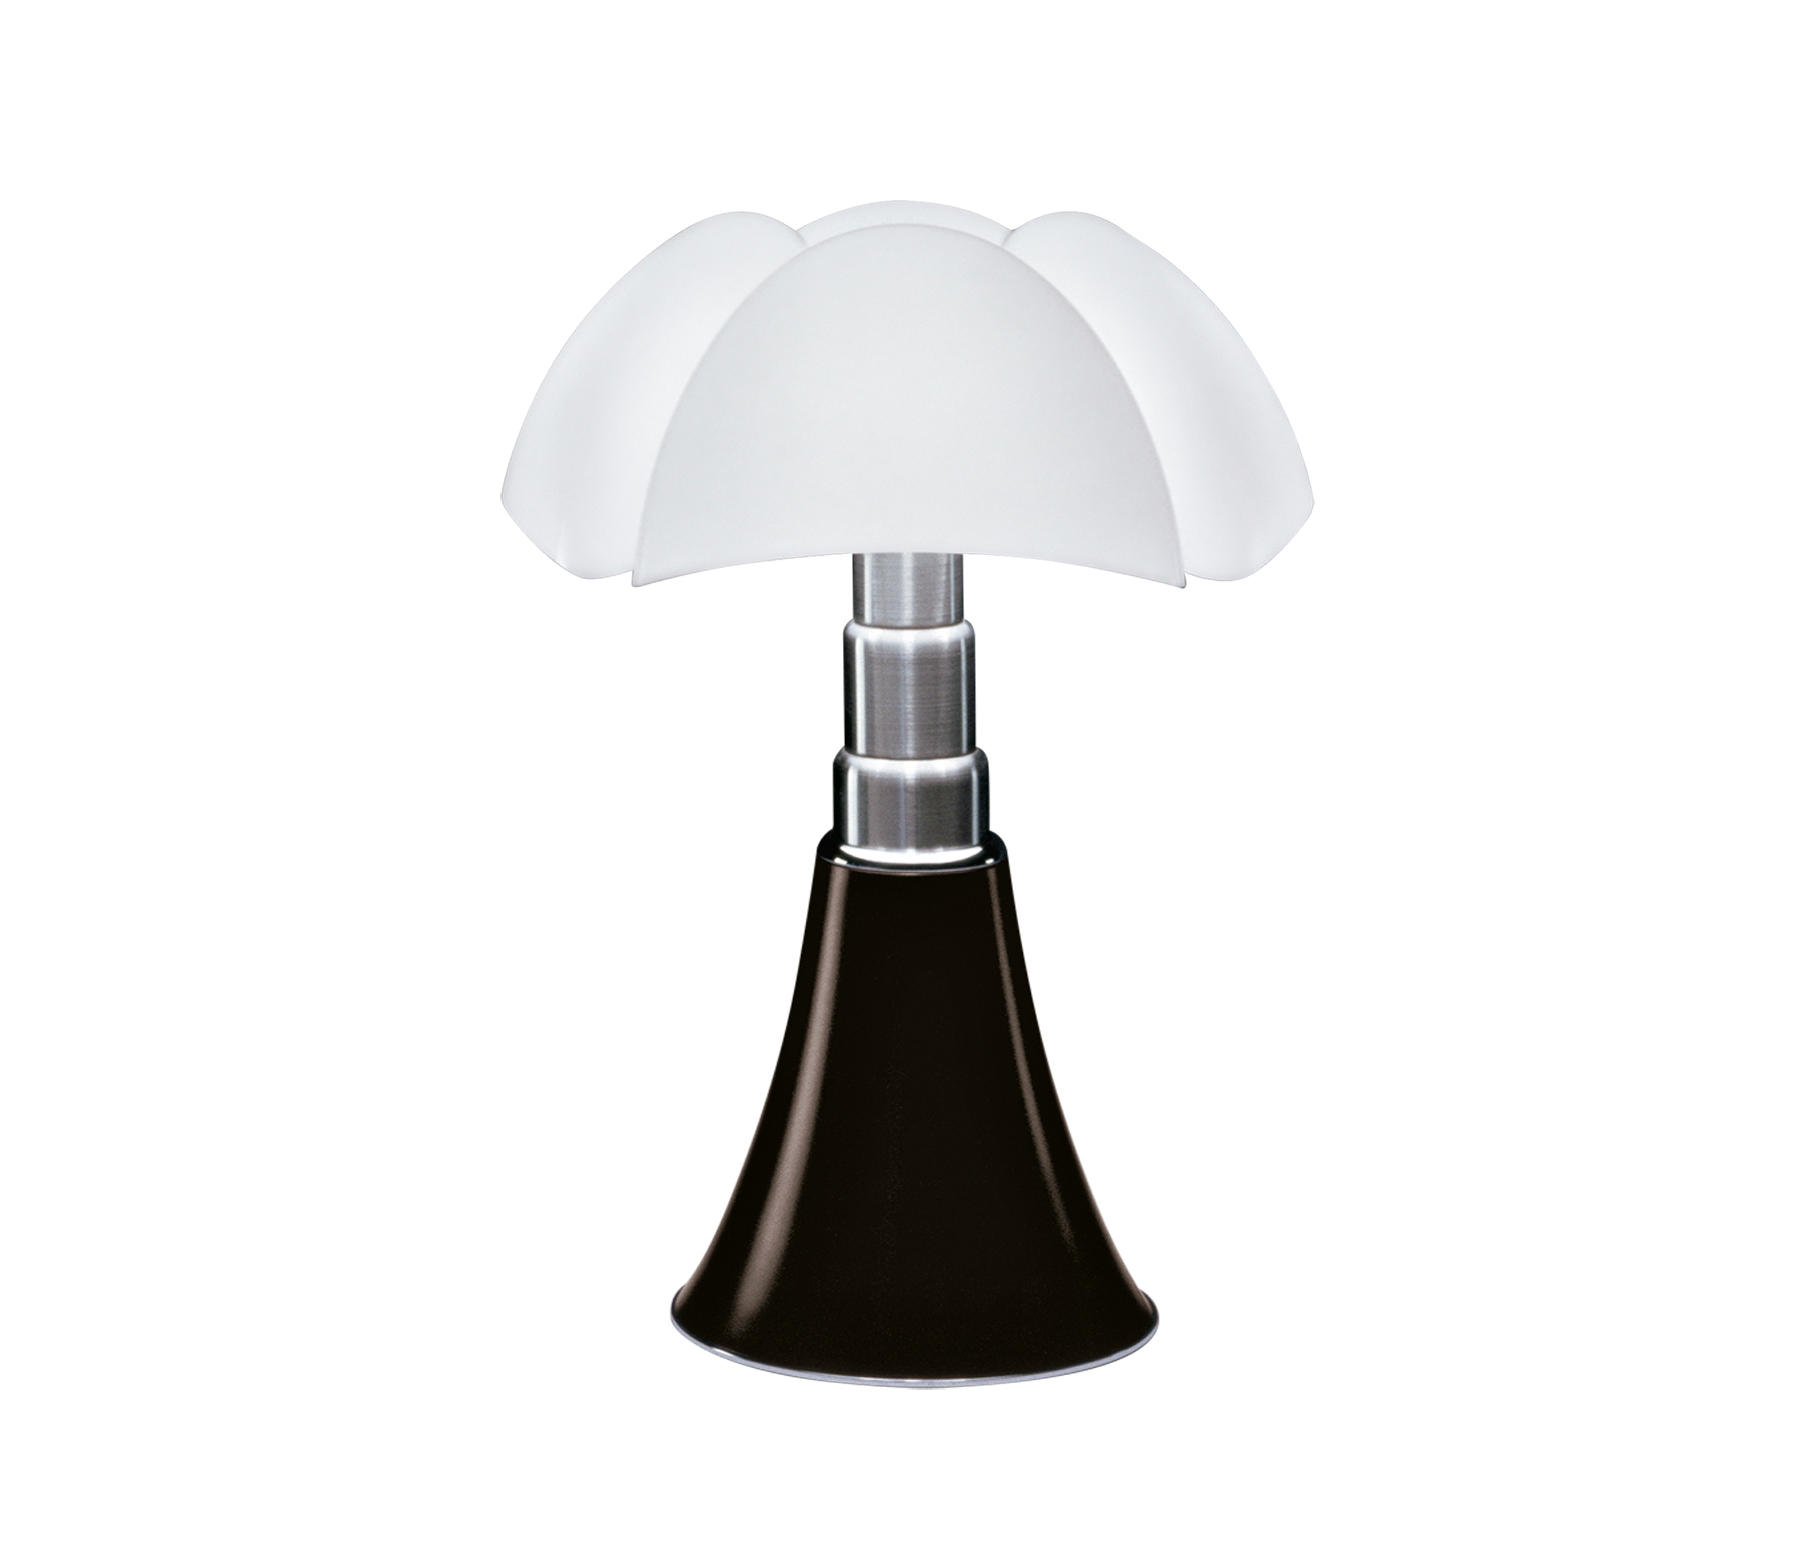 pipistrello general lighting from martinelli luce architonic. Black Bedroom Furniture Sets. Home Design Ideas